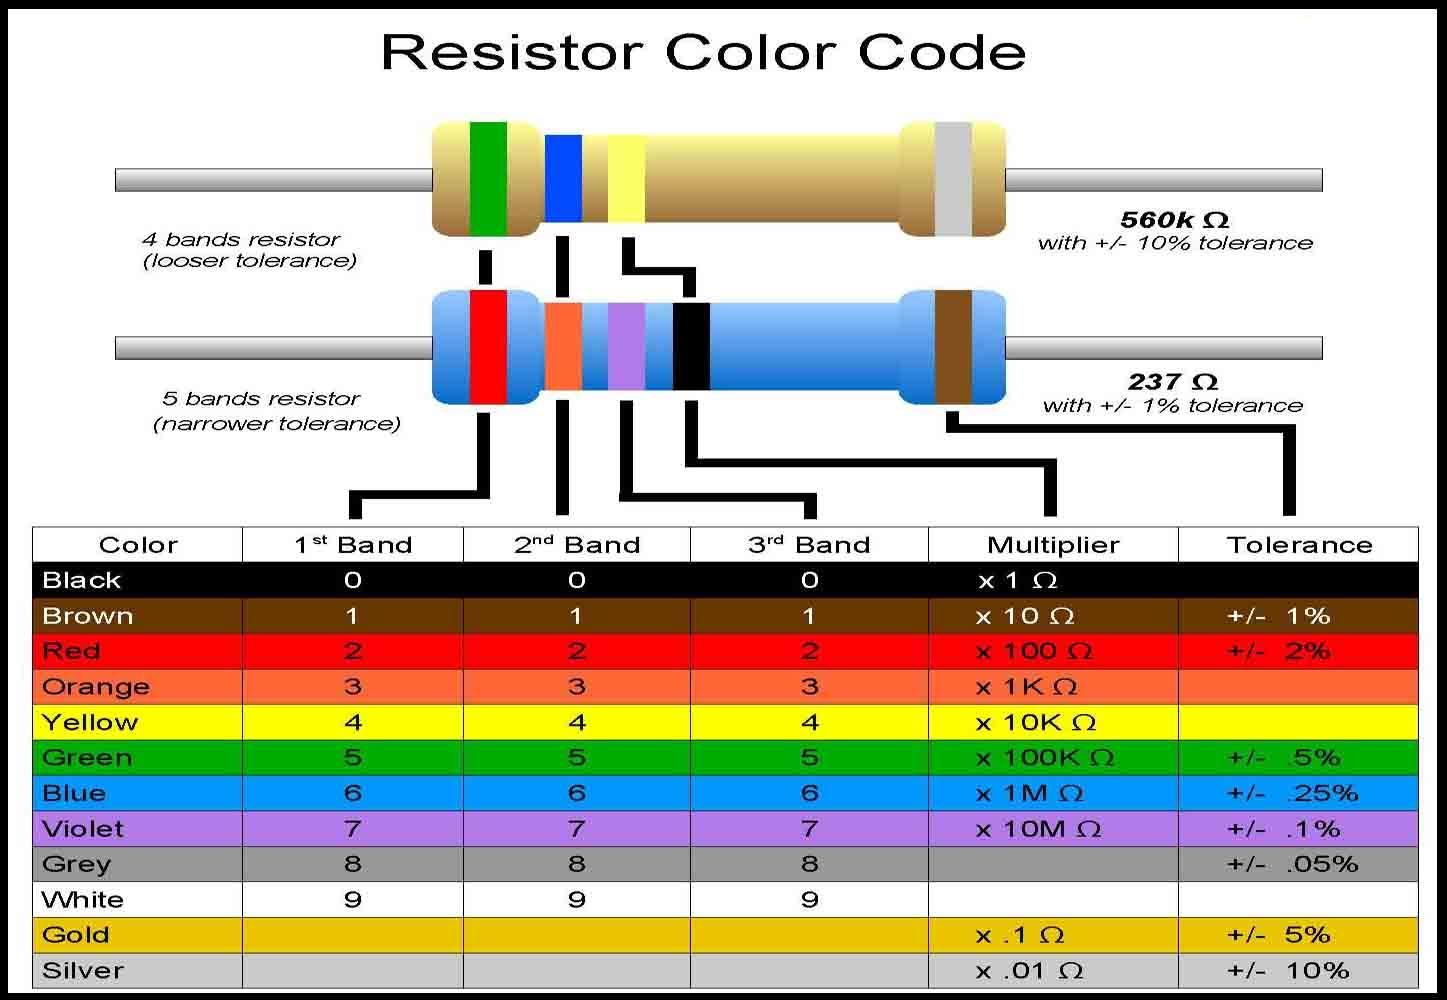 resistor color codes knowledge coding circuit diagram ham radio wiring diagram according to old colour code eee community [ 1447 x 1000 Pixel ]